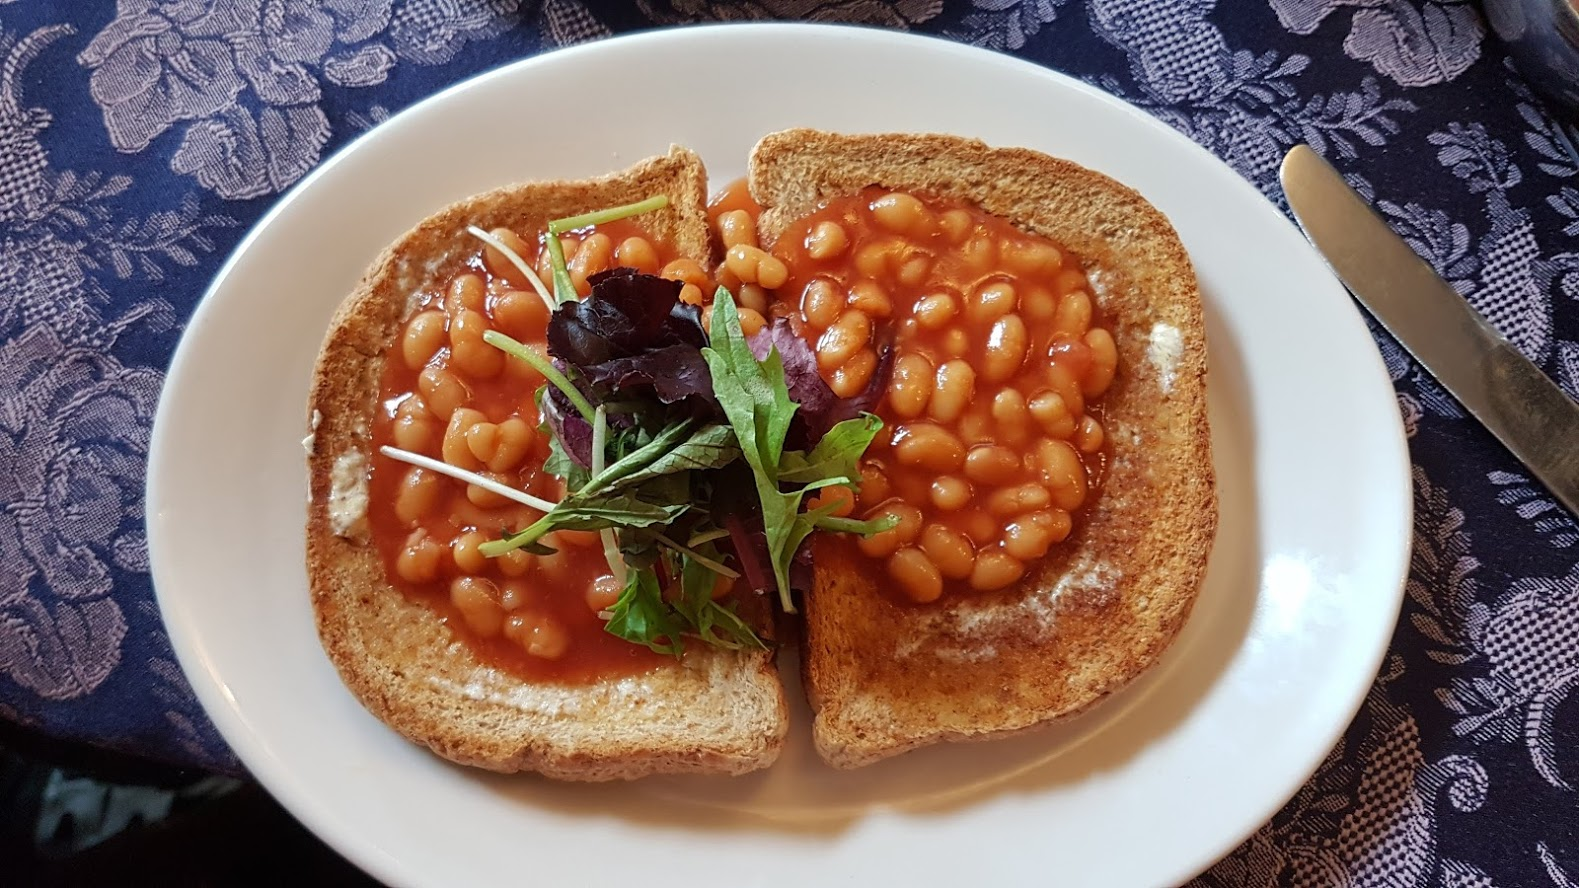 That lunch in pictures (1). Nicely presented, nice bread, great to have both dairy-free spread as well as tea with soya milk, but I could have done with more baked beans really. Yes really.